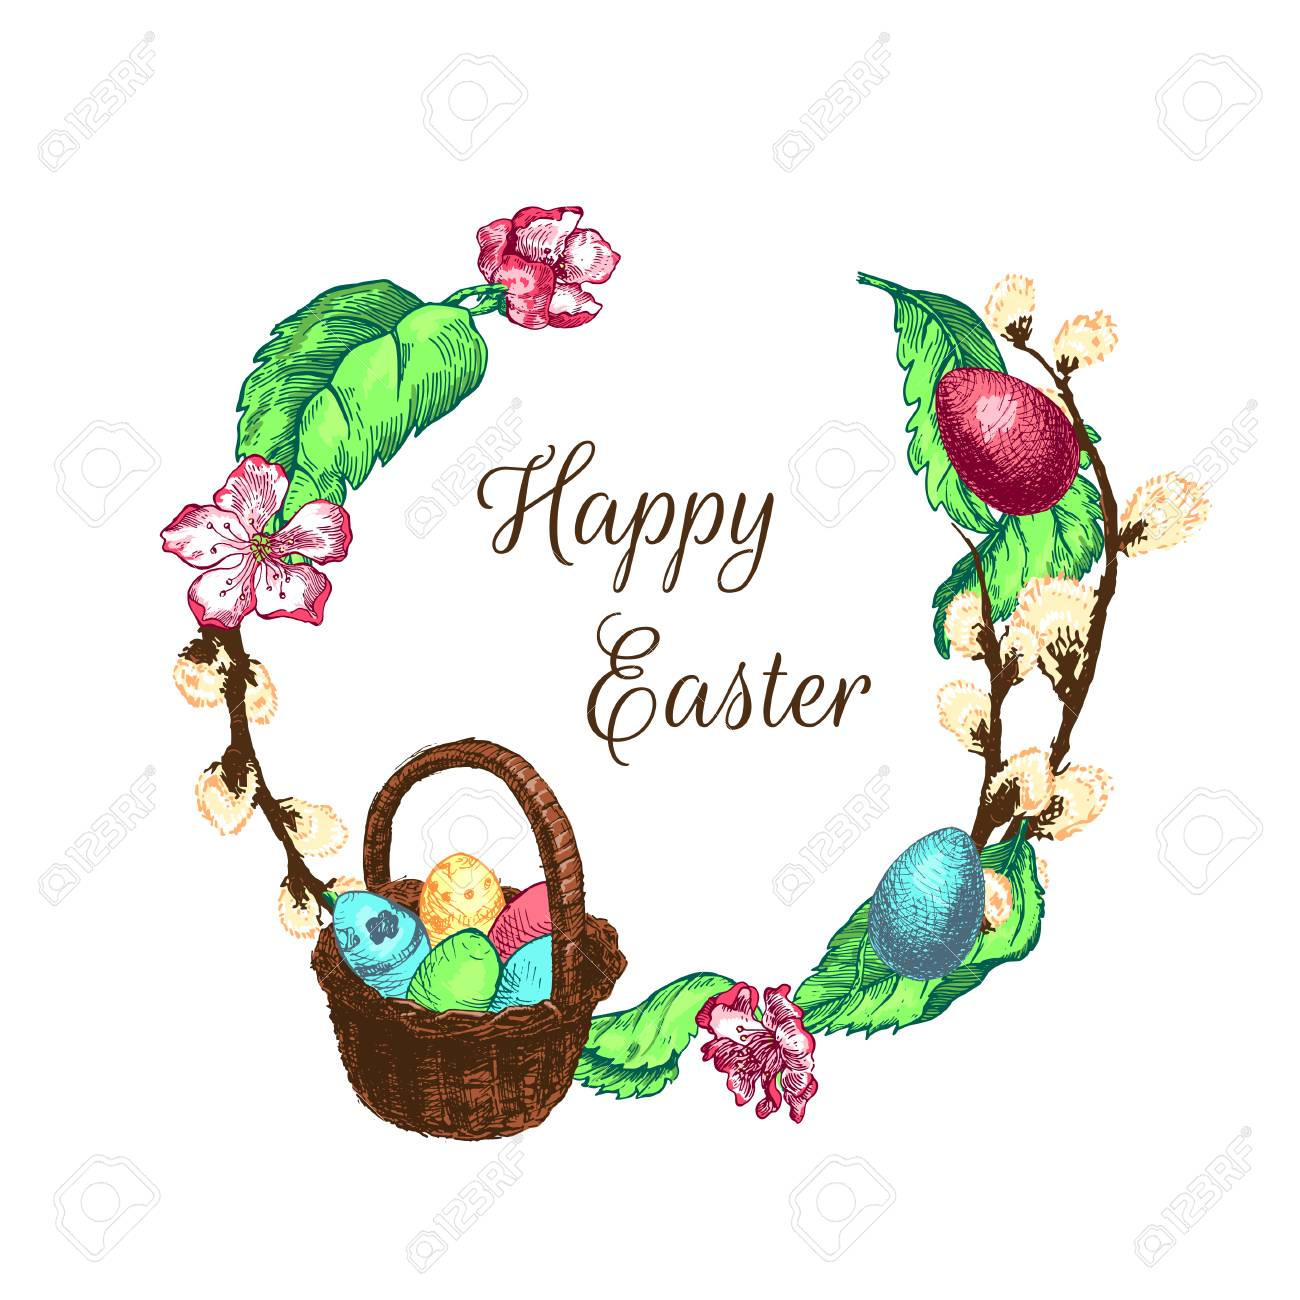 Easter Day Greetings Stock Photo Picture And Royalty Free Image